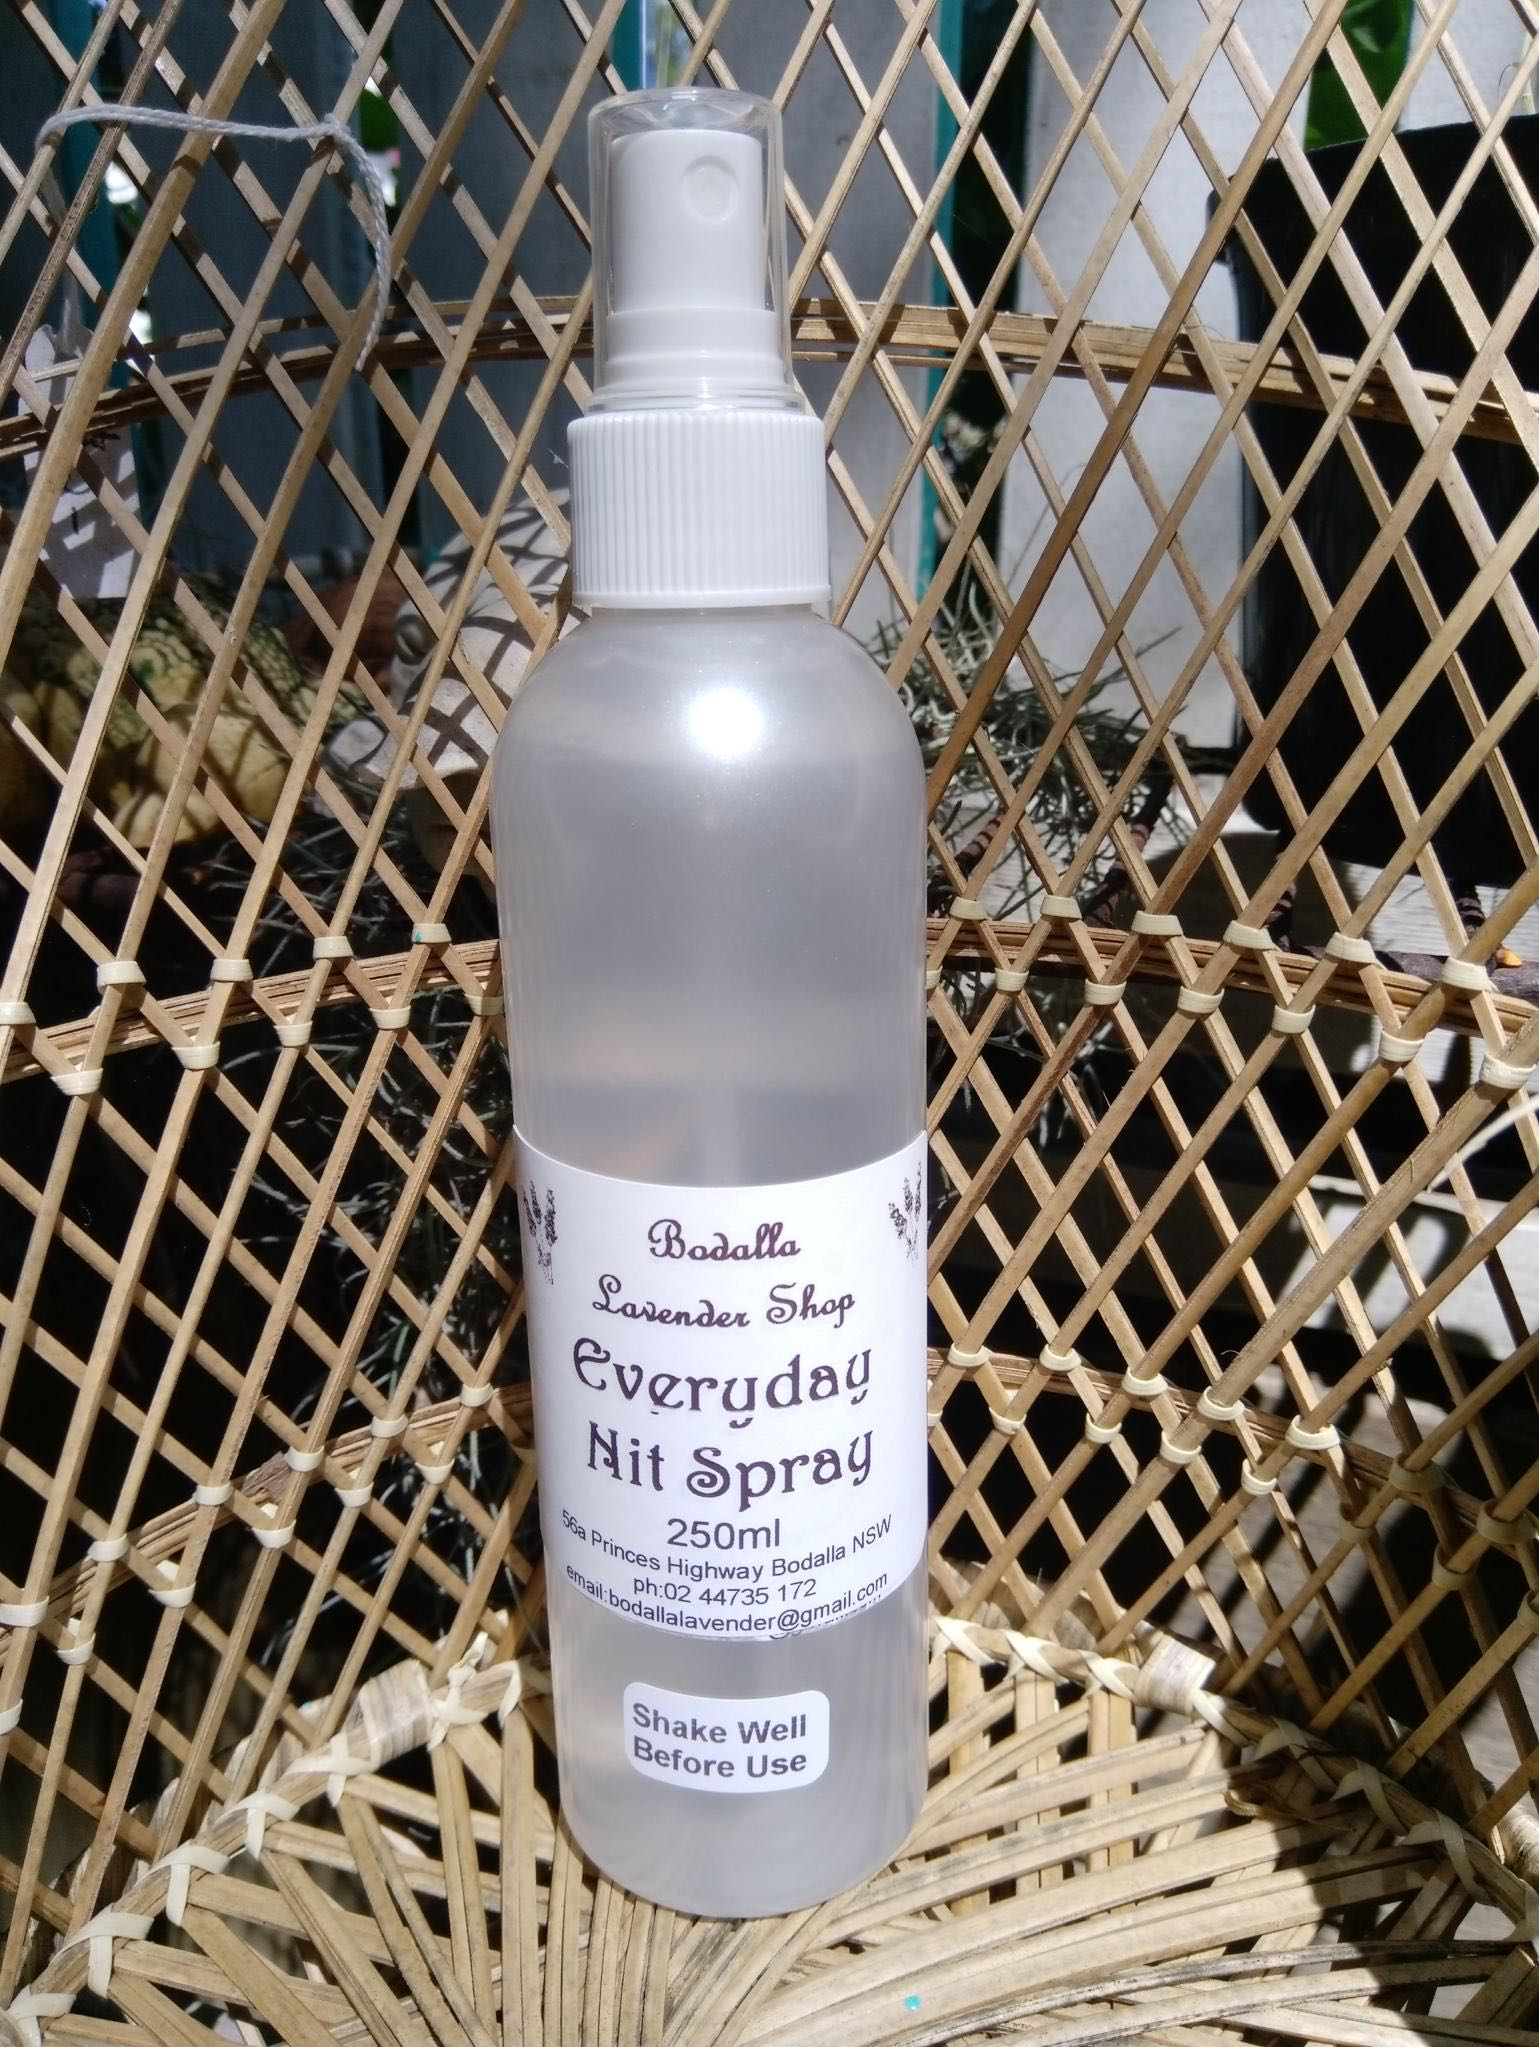 Photograph of an Every Day Nit Spray 250ml product